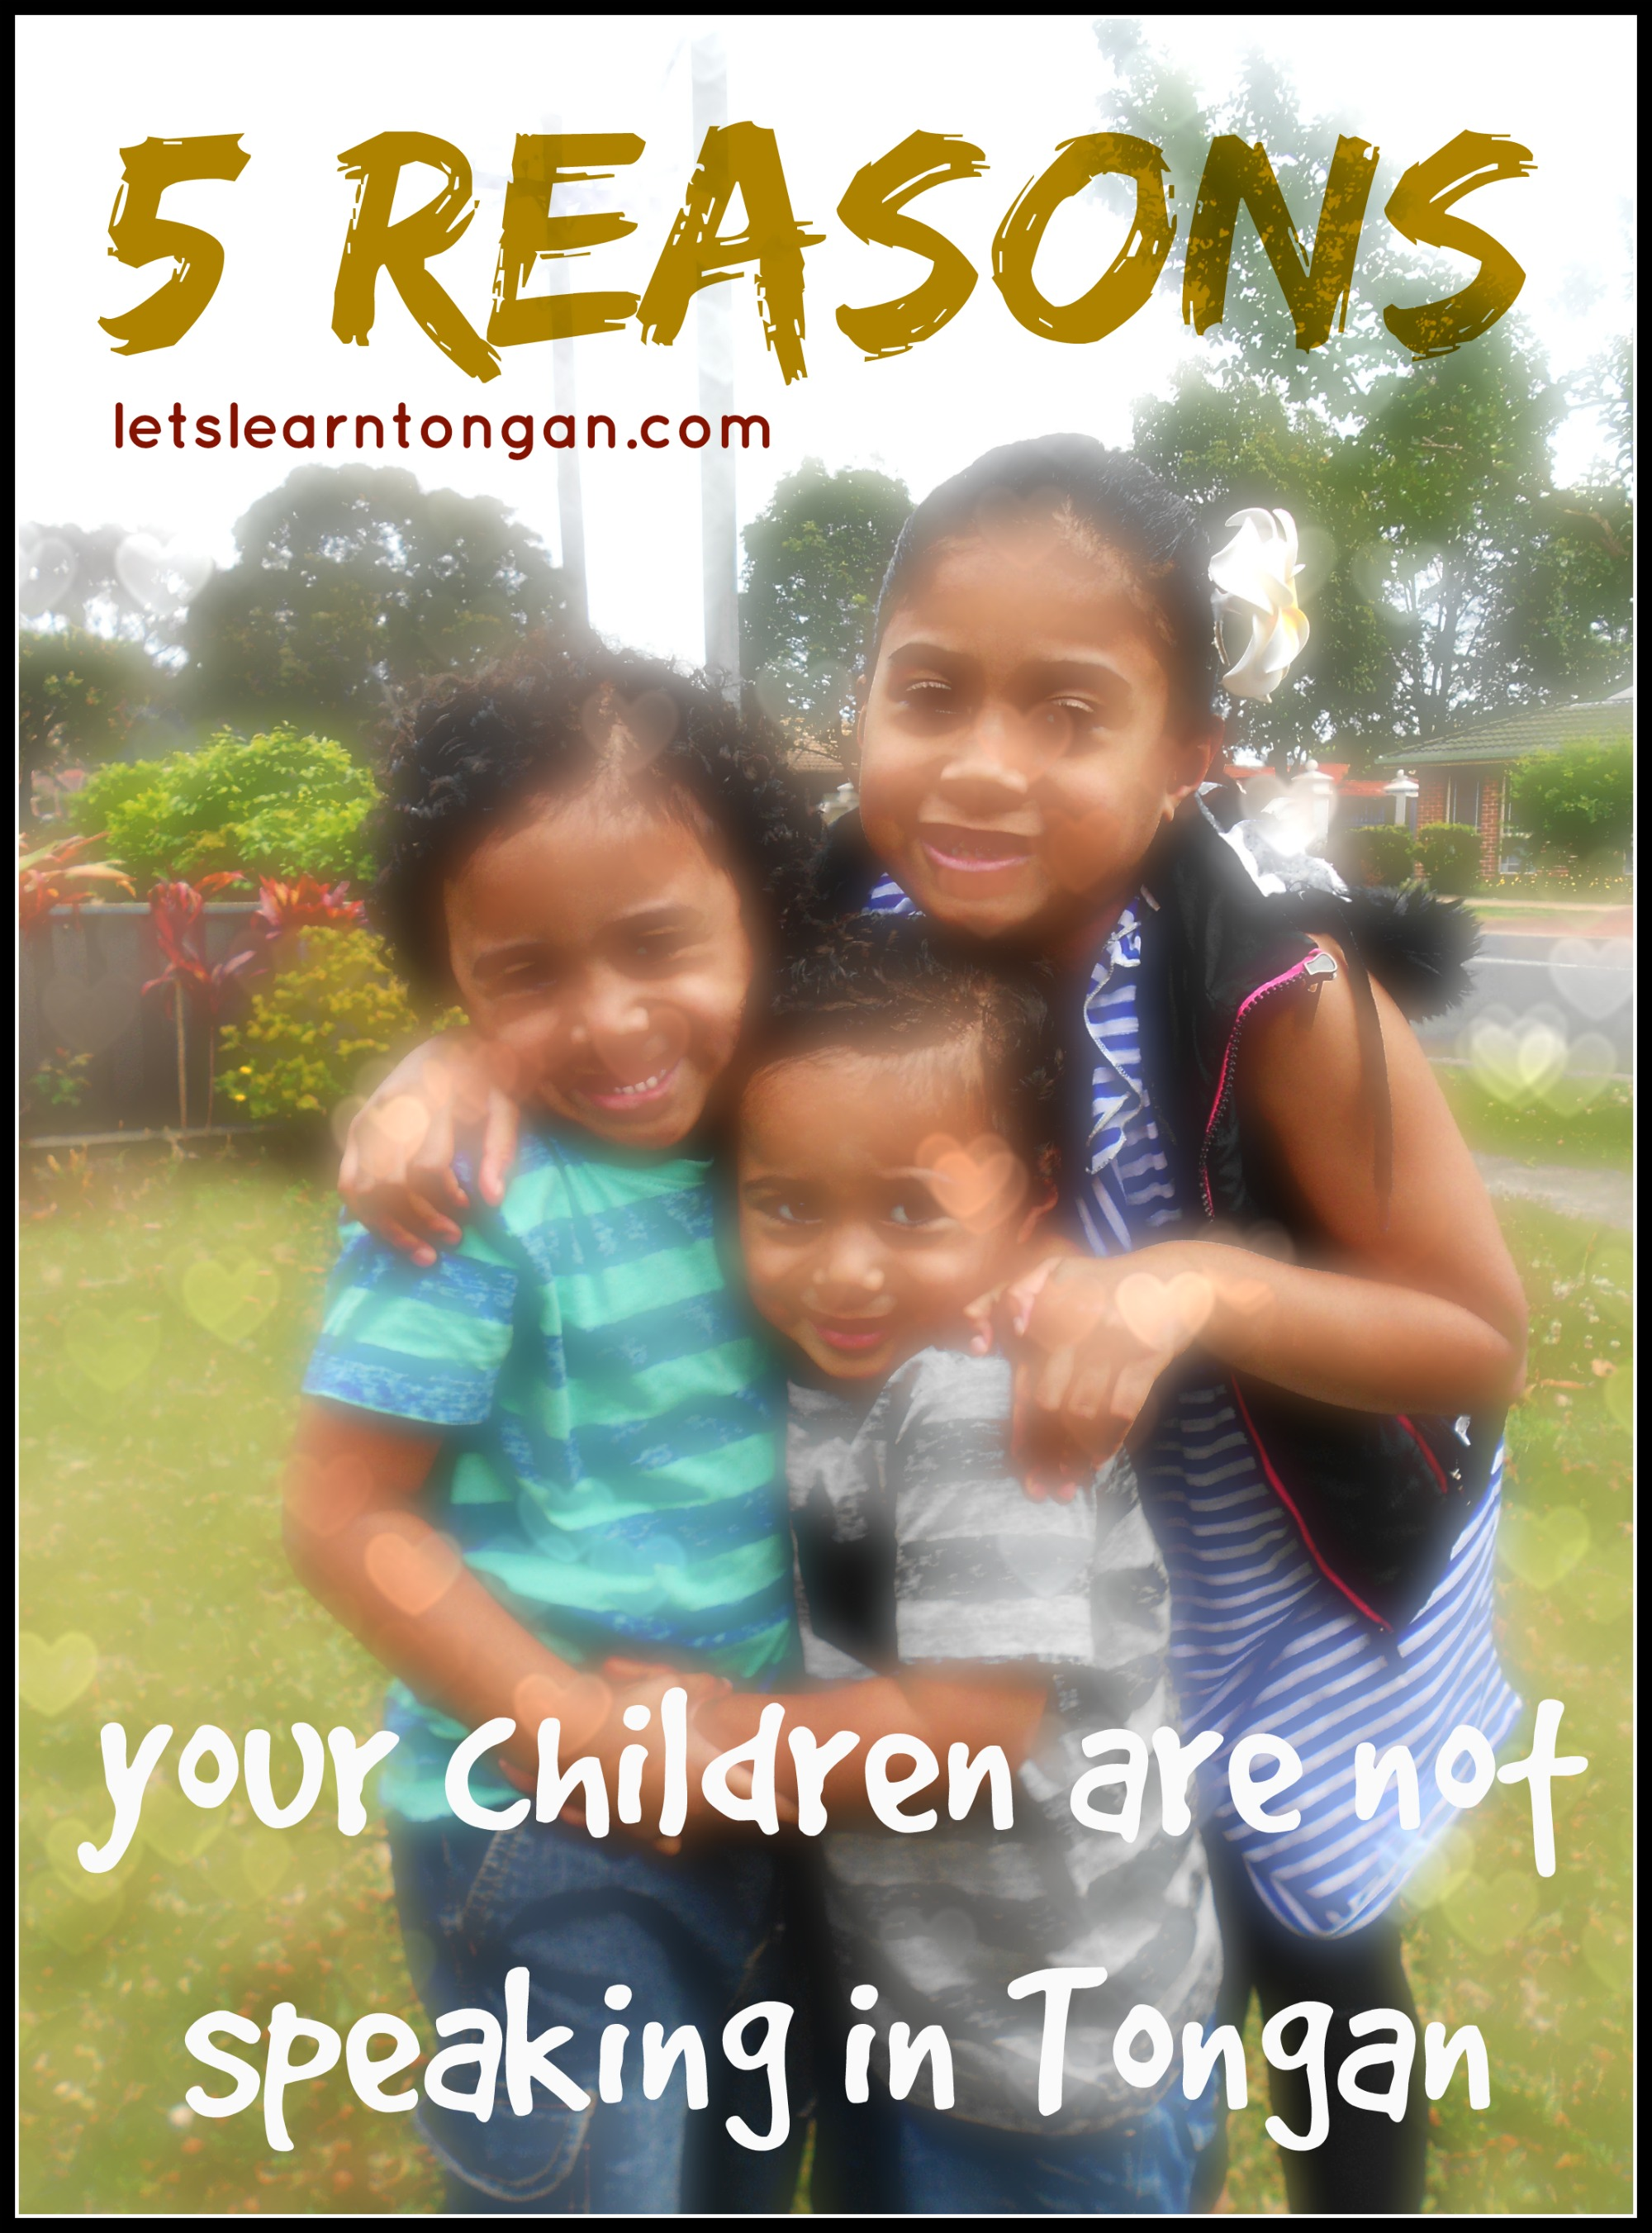 Better Life how to win checkers, learn how to speak tongan,